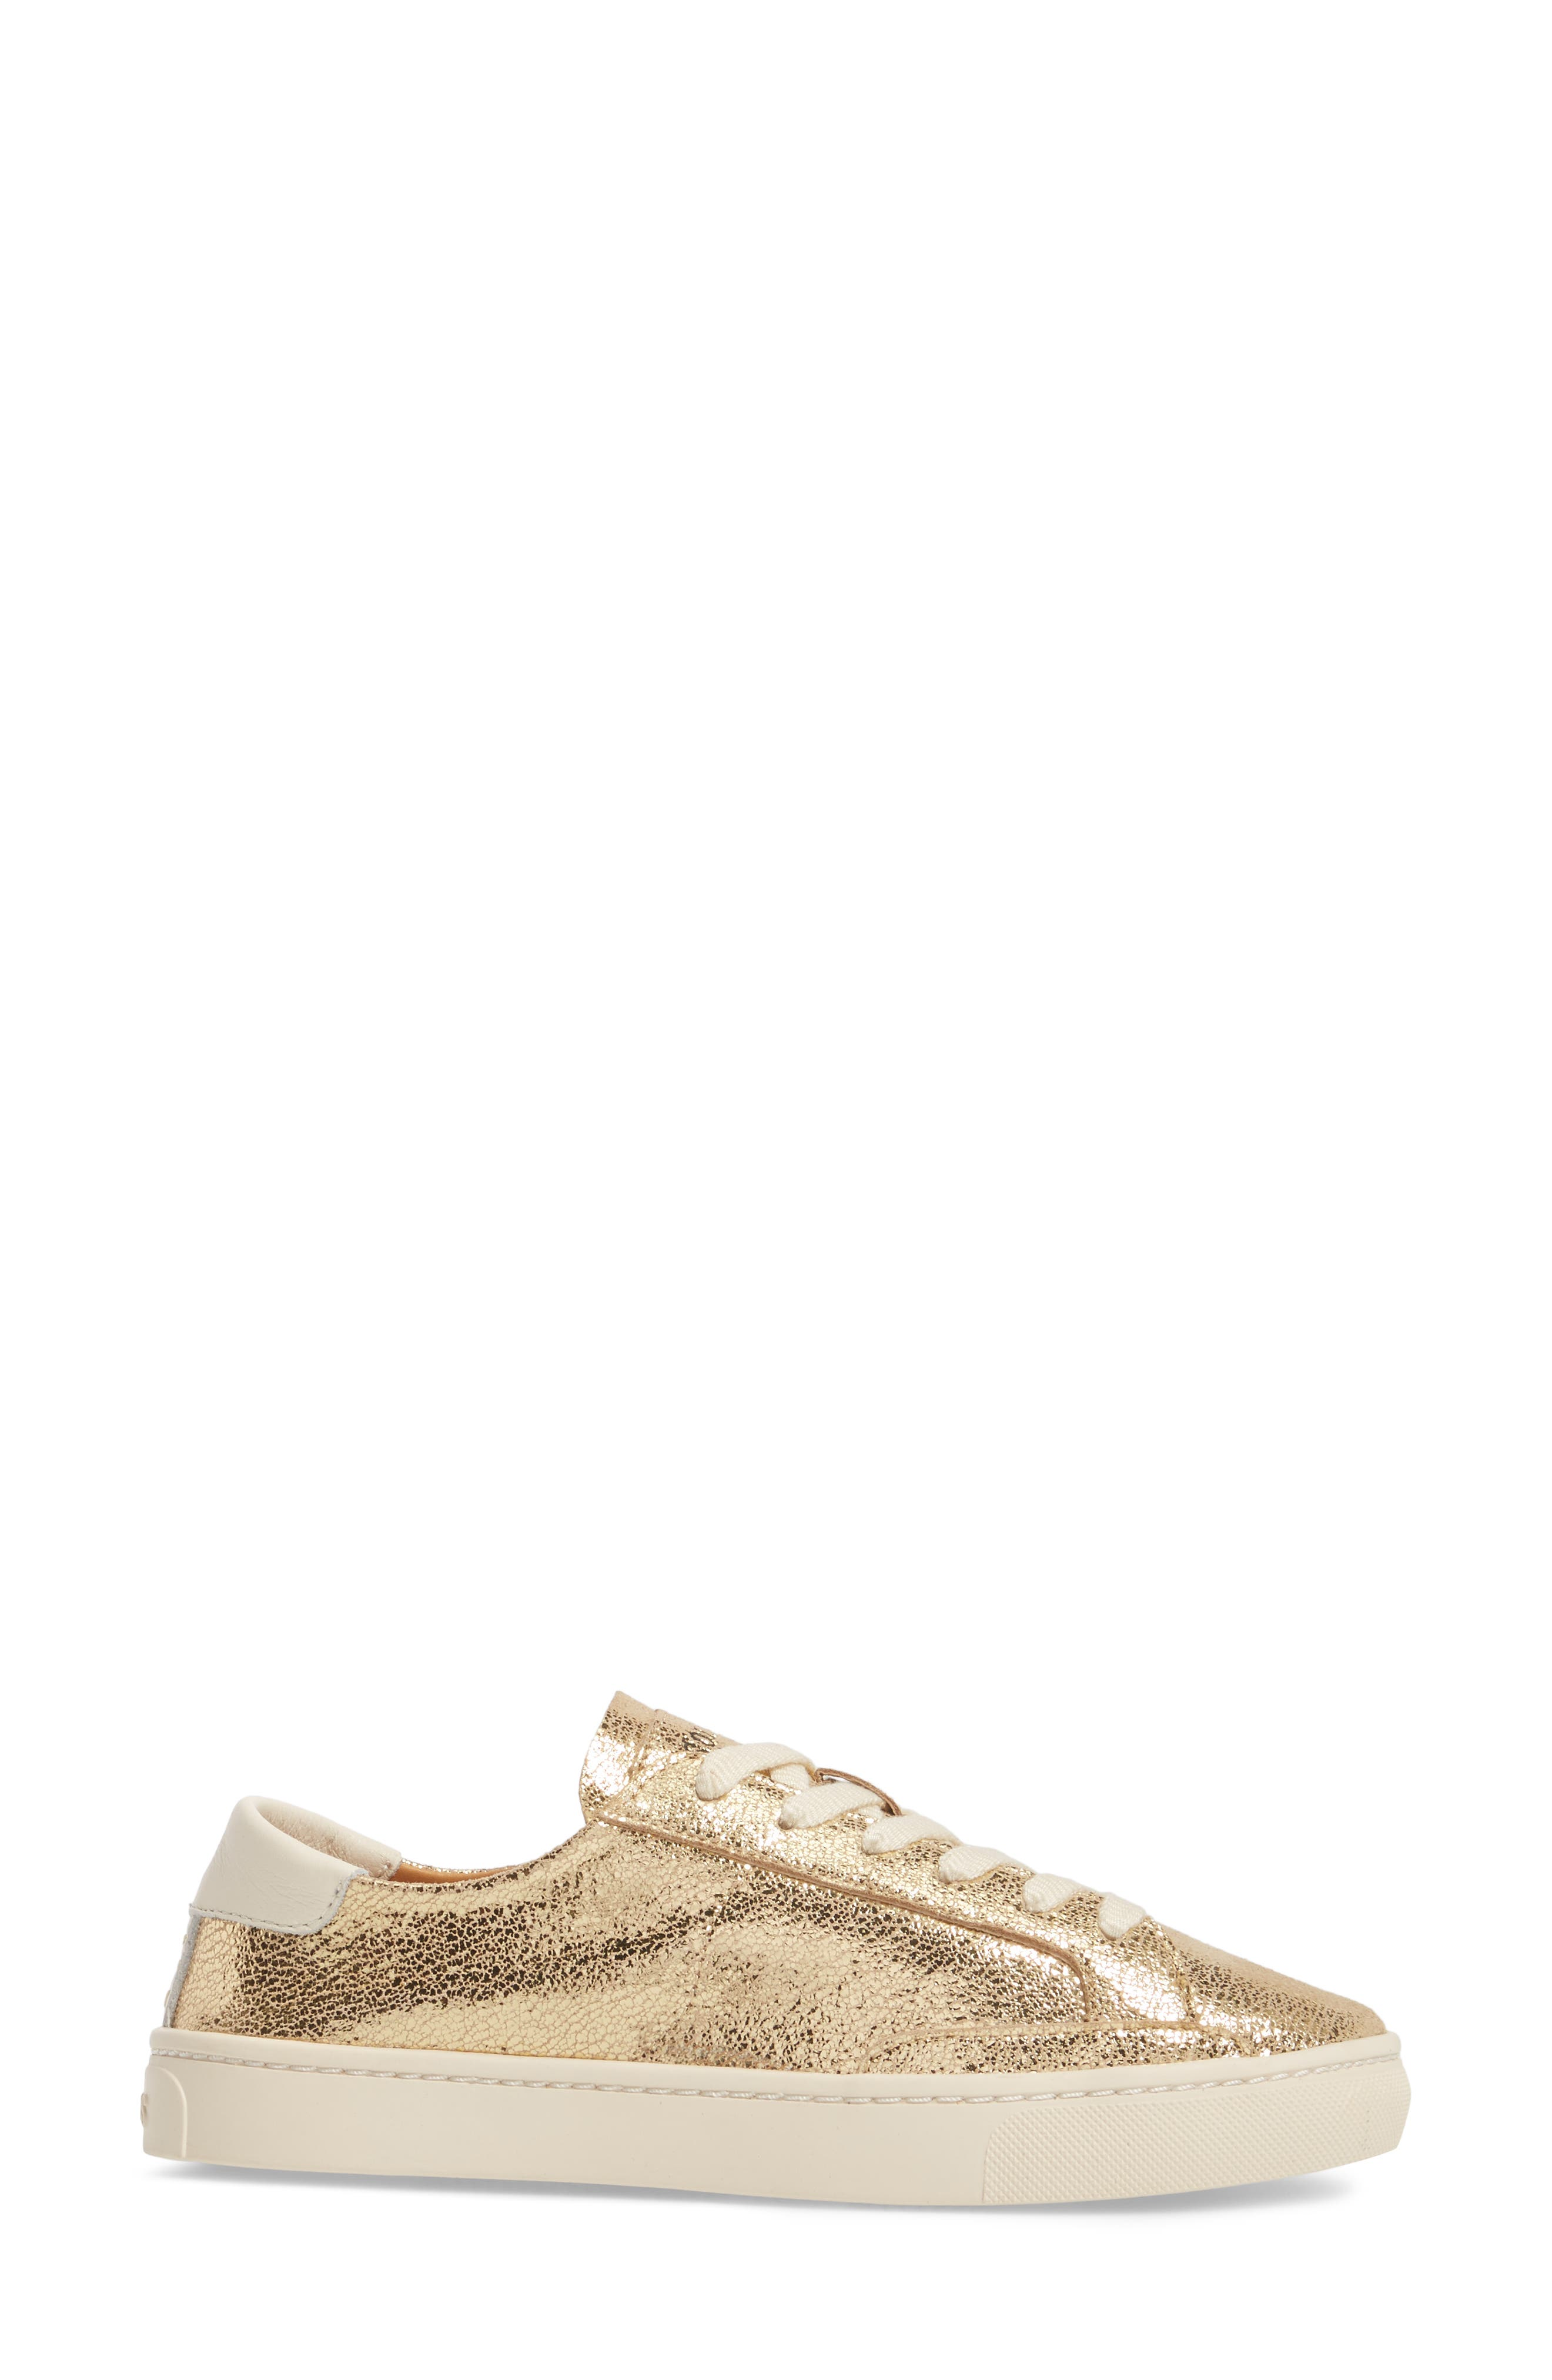 Ibiza Metallic Lace-Up Sneaker,                             Alternate thumbnail 3, color,                             Pale Gold Leather